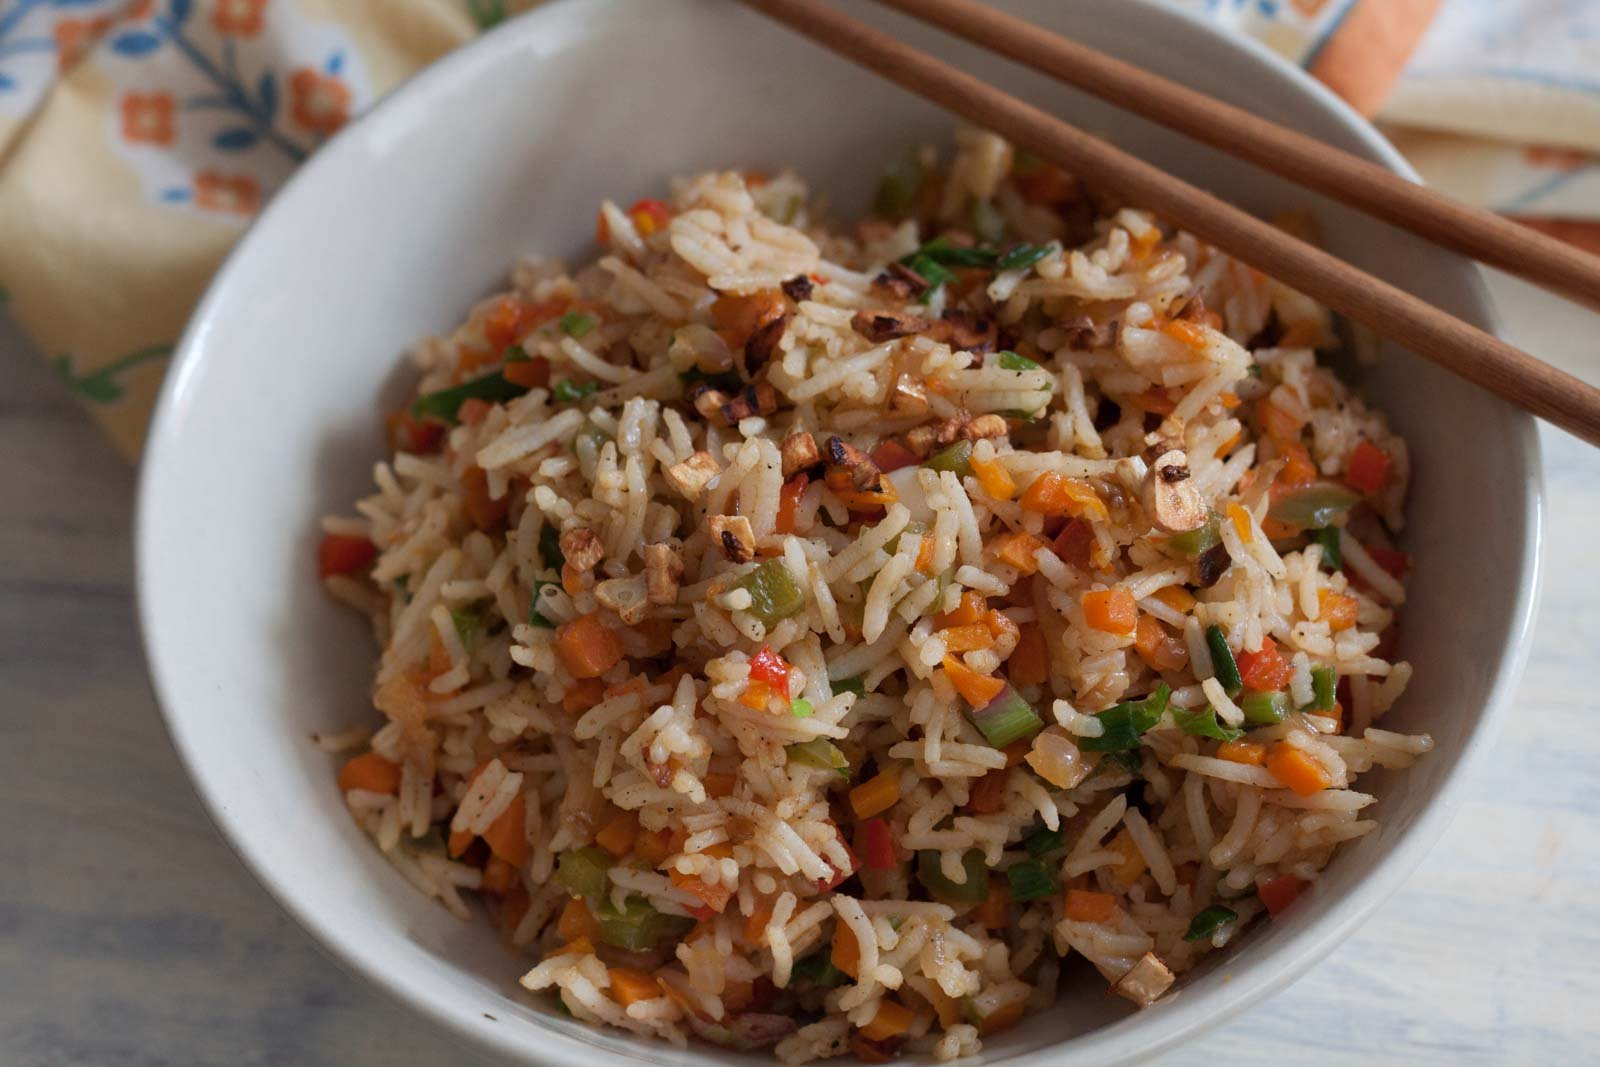 Chilly Garlic Fried Rice